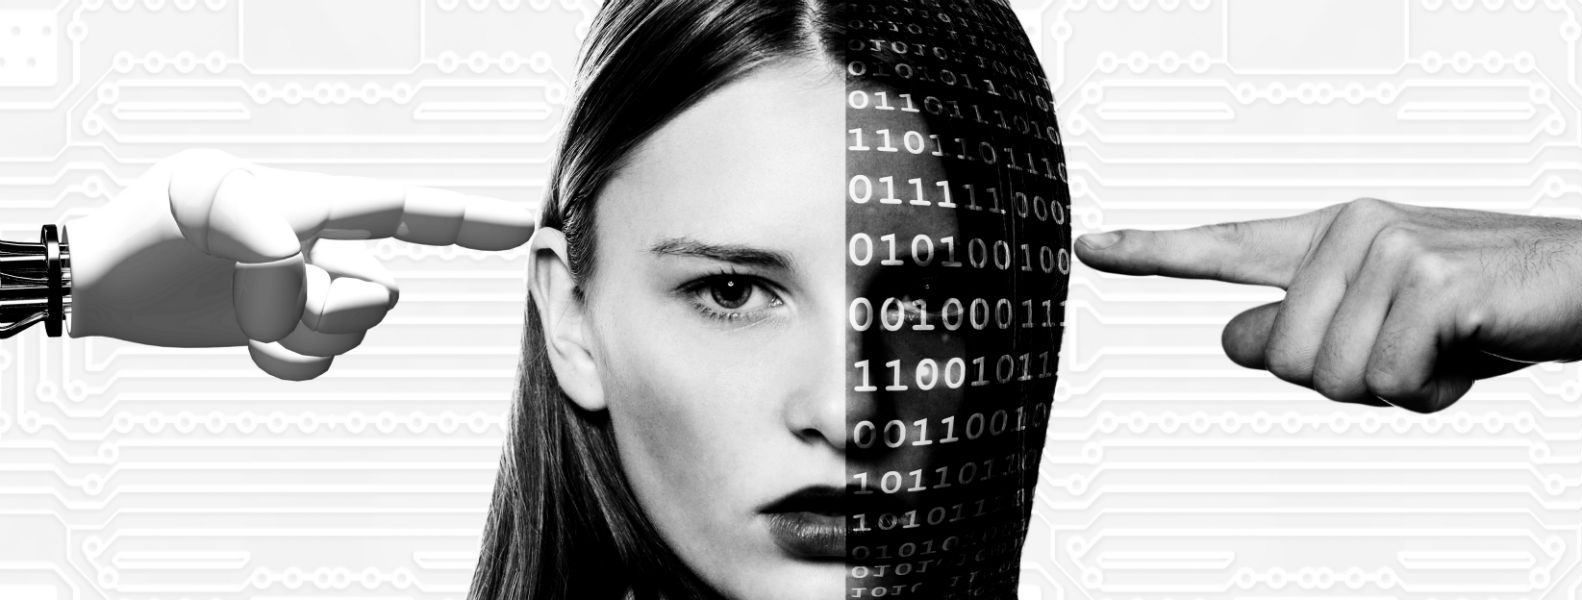 Artificial Intelligence Has a Racism Issue